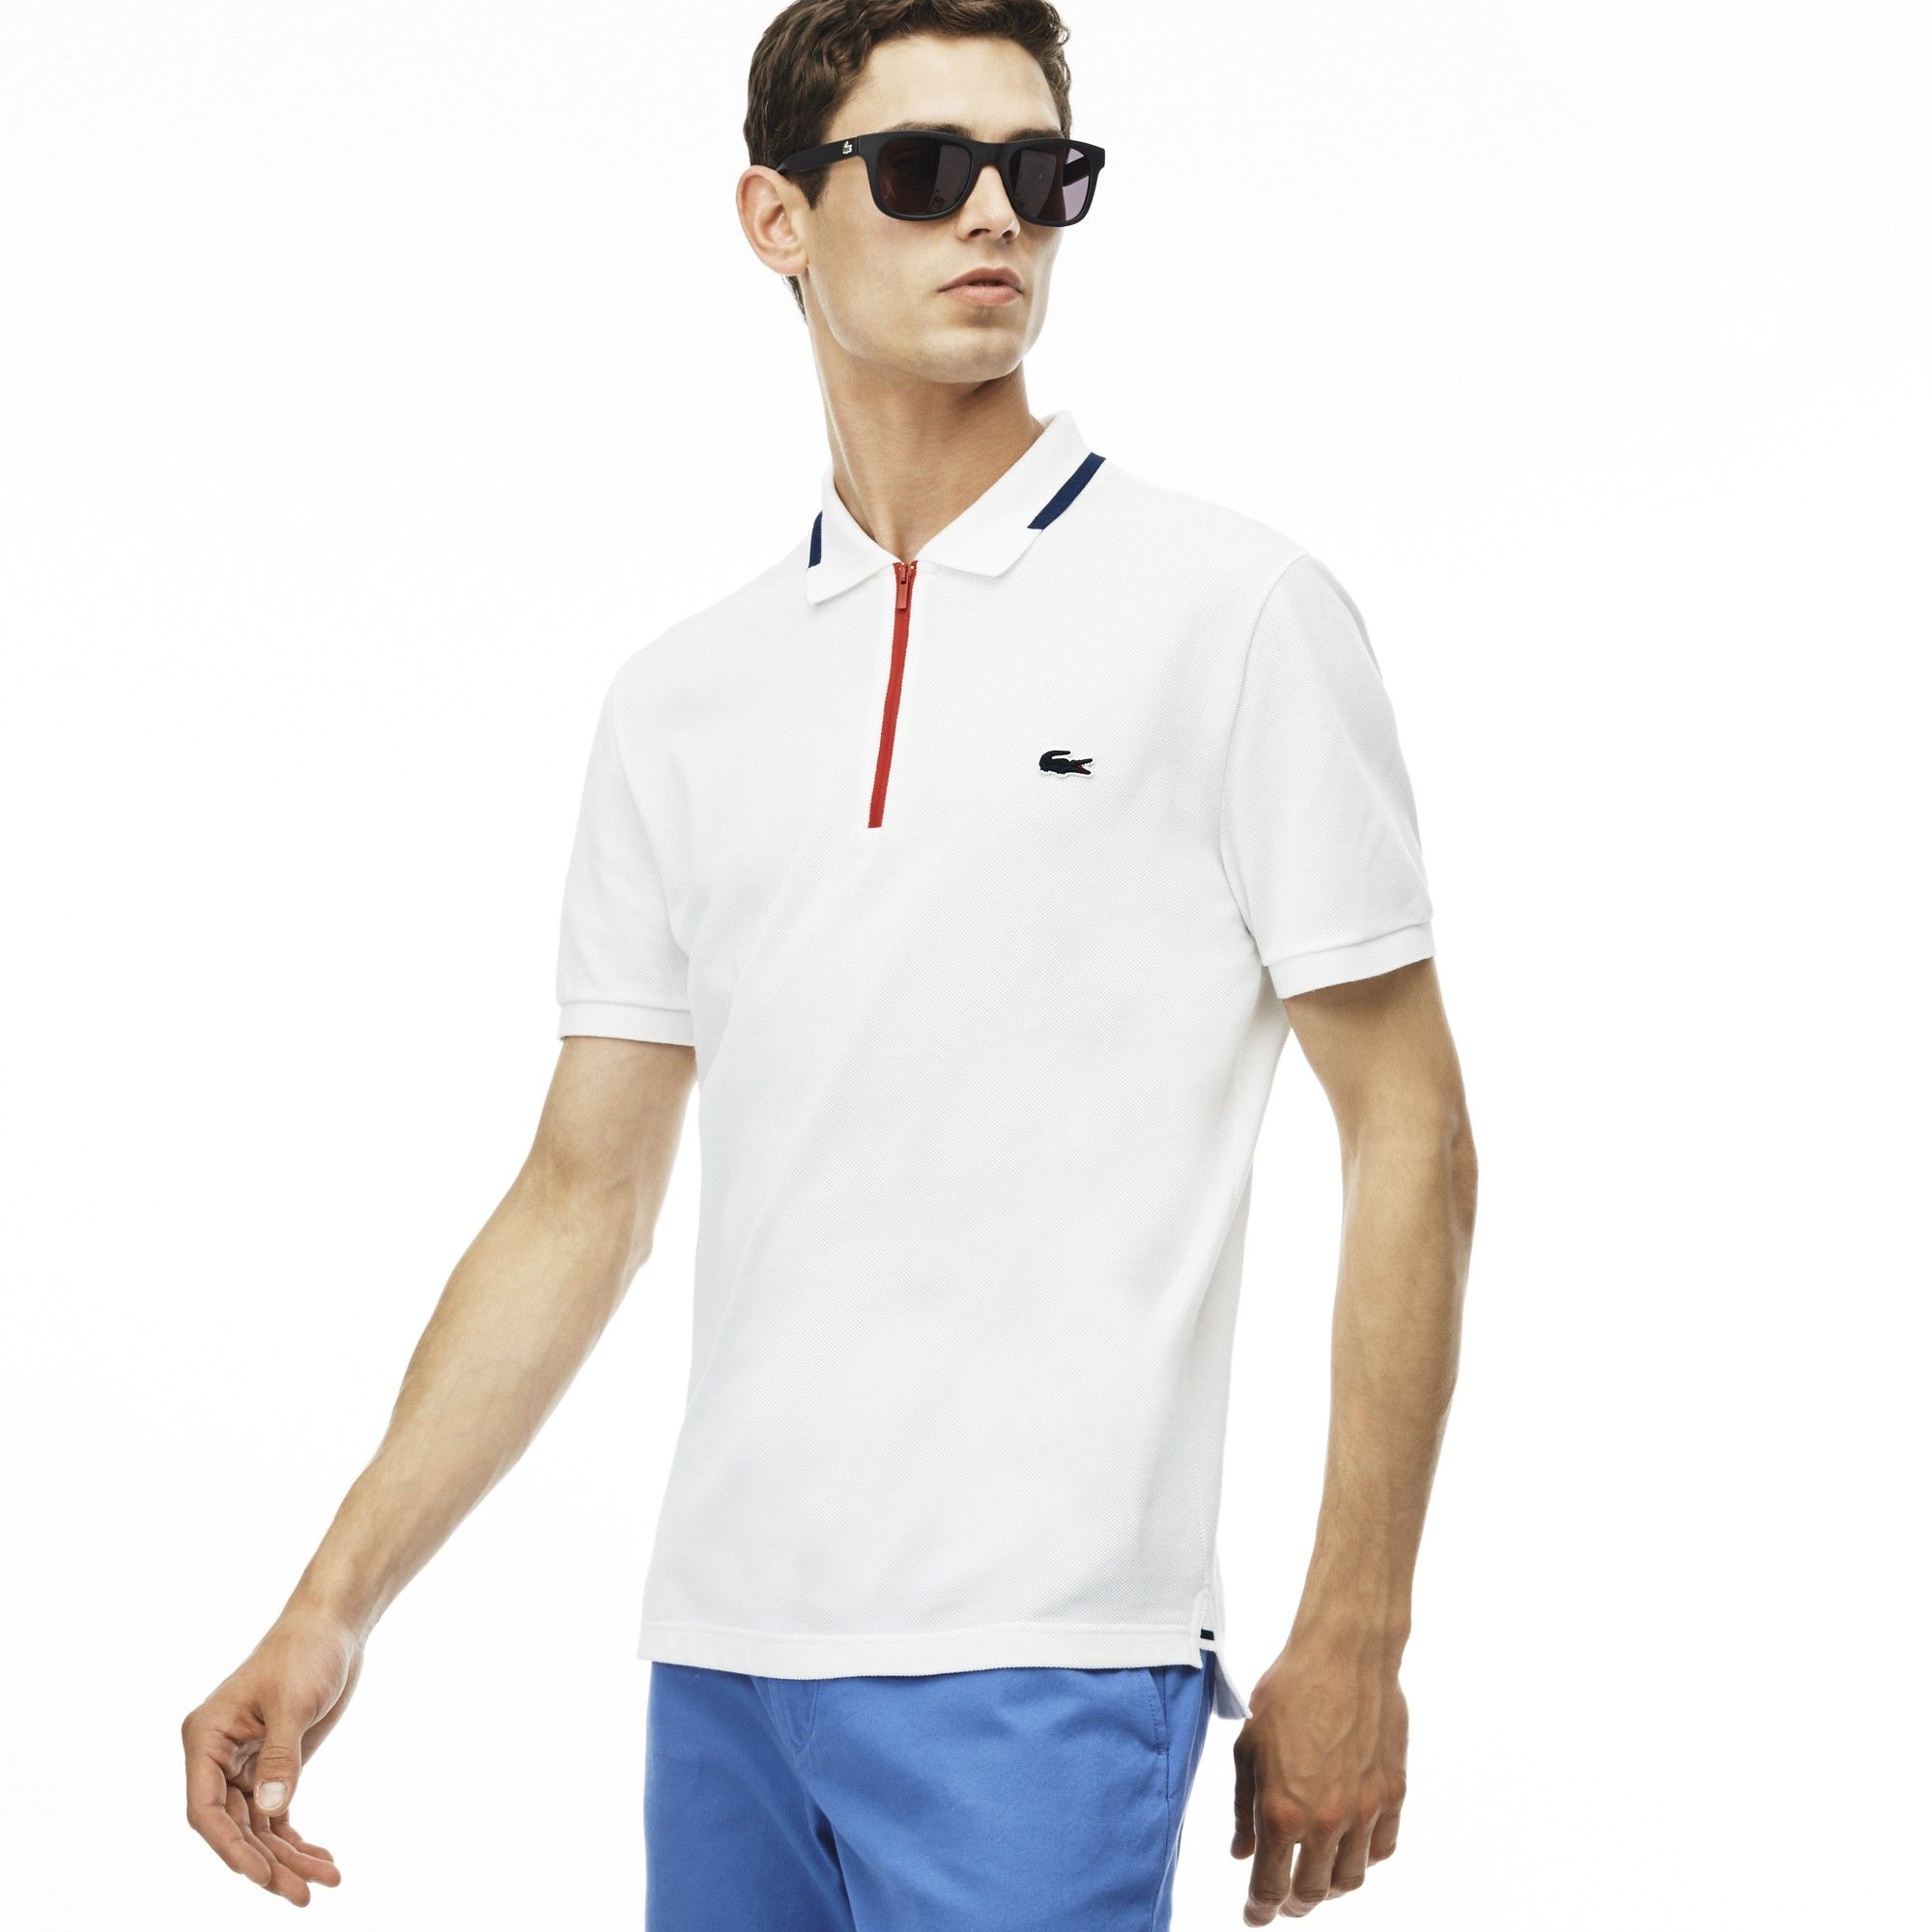 9b4b82a5 LACOSTE Men's Made in France Slim Fit Zippered Polo Shirt - white ...